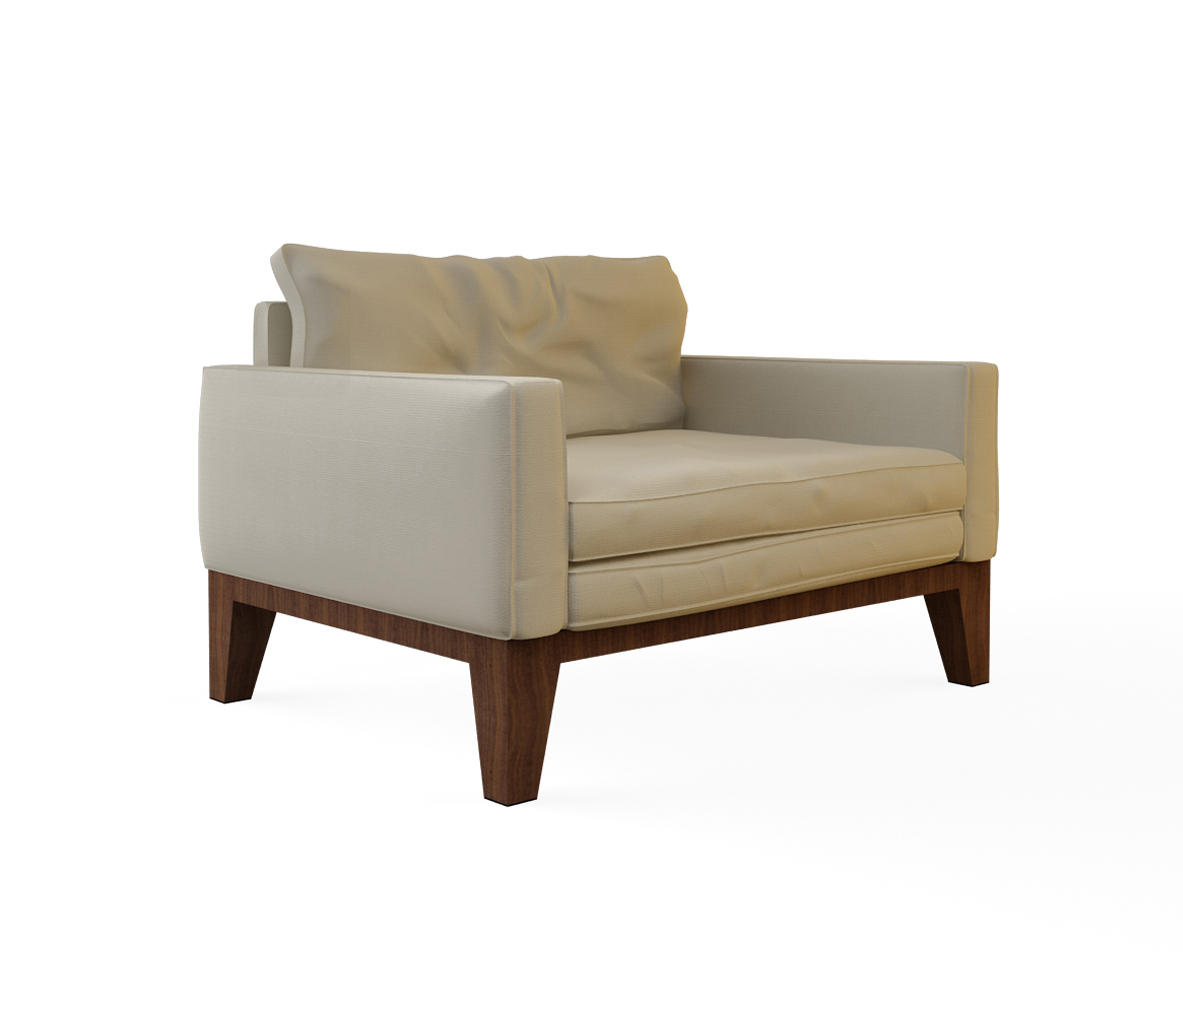 Juna Single Sofa By Nurus Armchairs